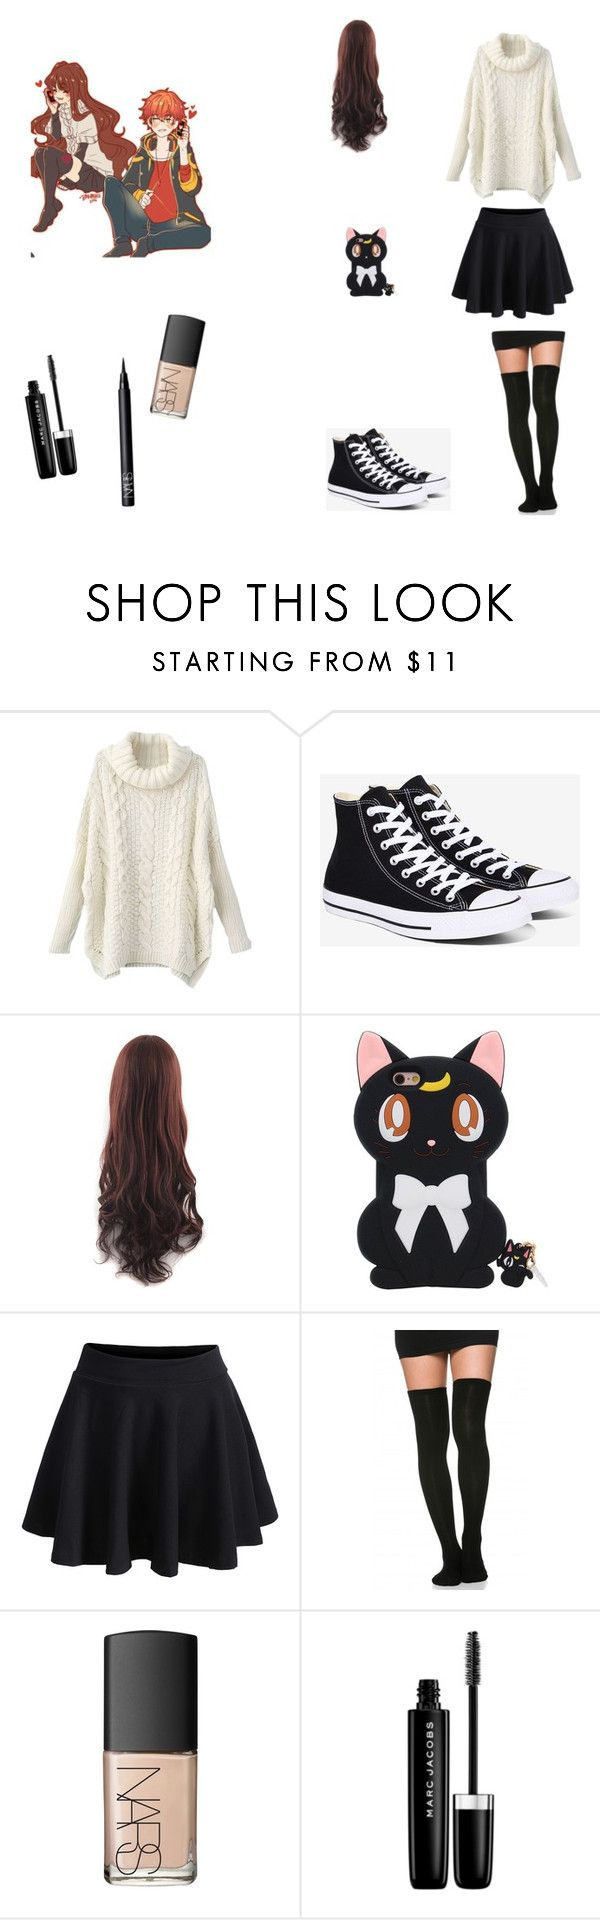 """MC (Mystic Messenger)"" by raven1wish on Polyvore featuring Converse, WithChic, NARS Cosmetics and Marc Jacobs"